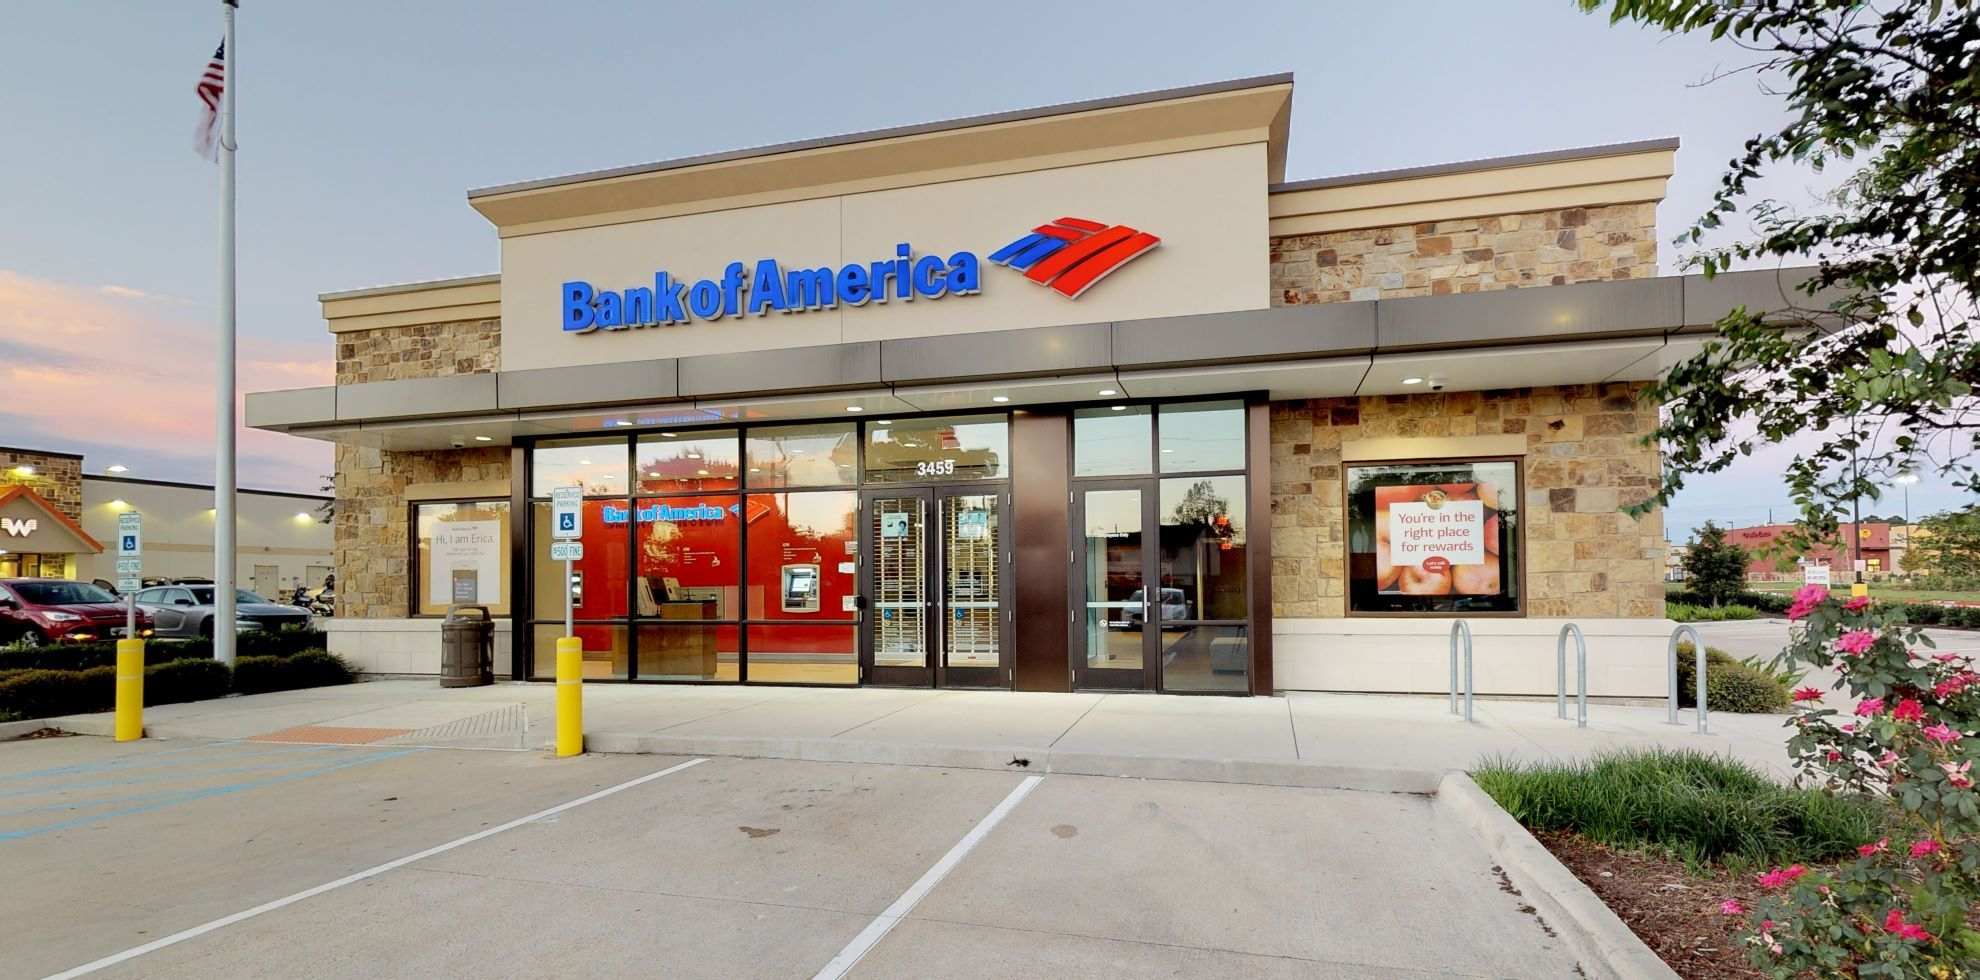 Bank of America financial center with drive-thru ATM | 3459 Rayford Rd, Spring, TX 77386